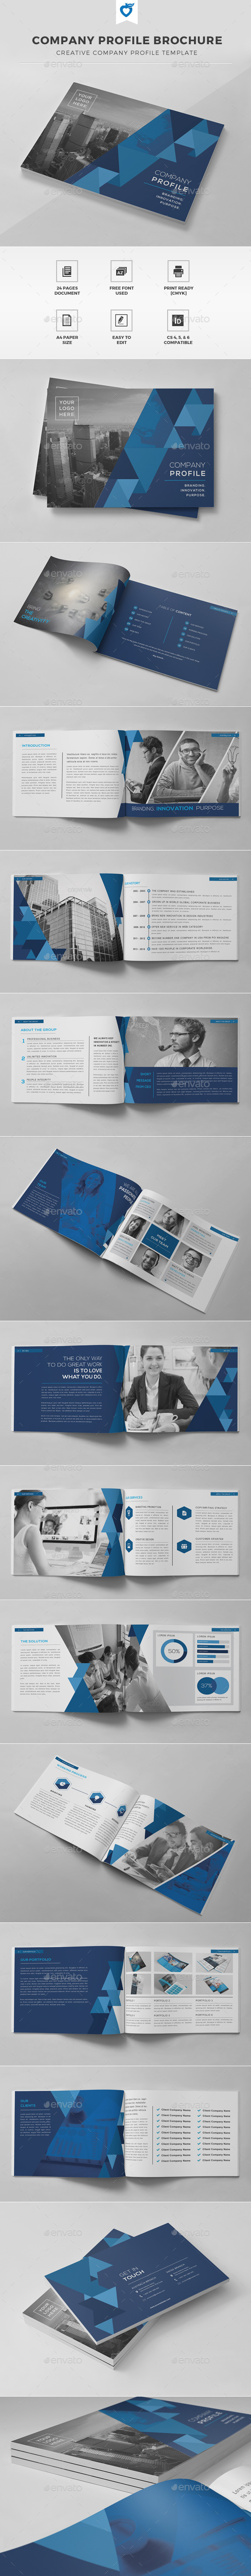 GraphicRiver Company Profile Brochure 11808076